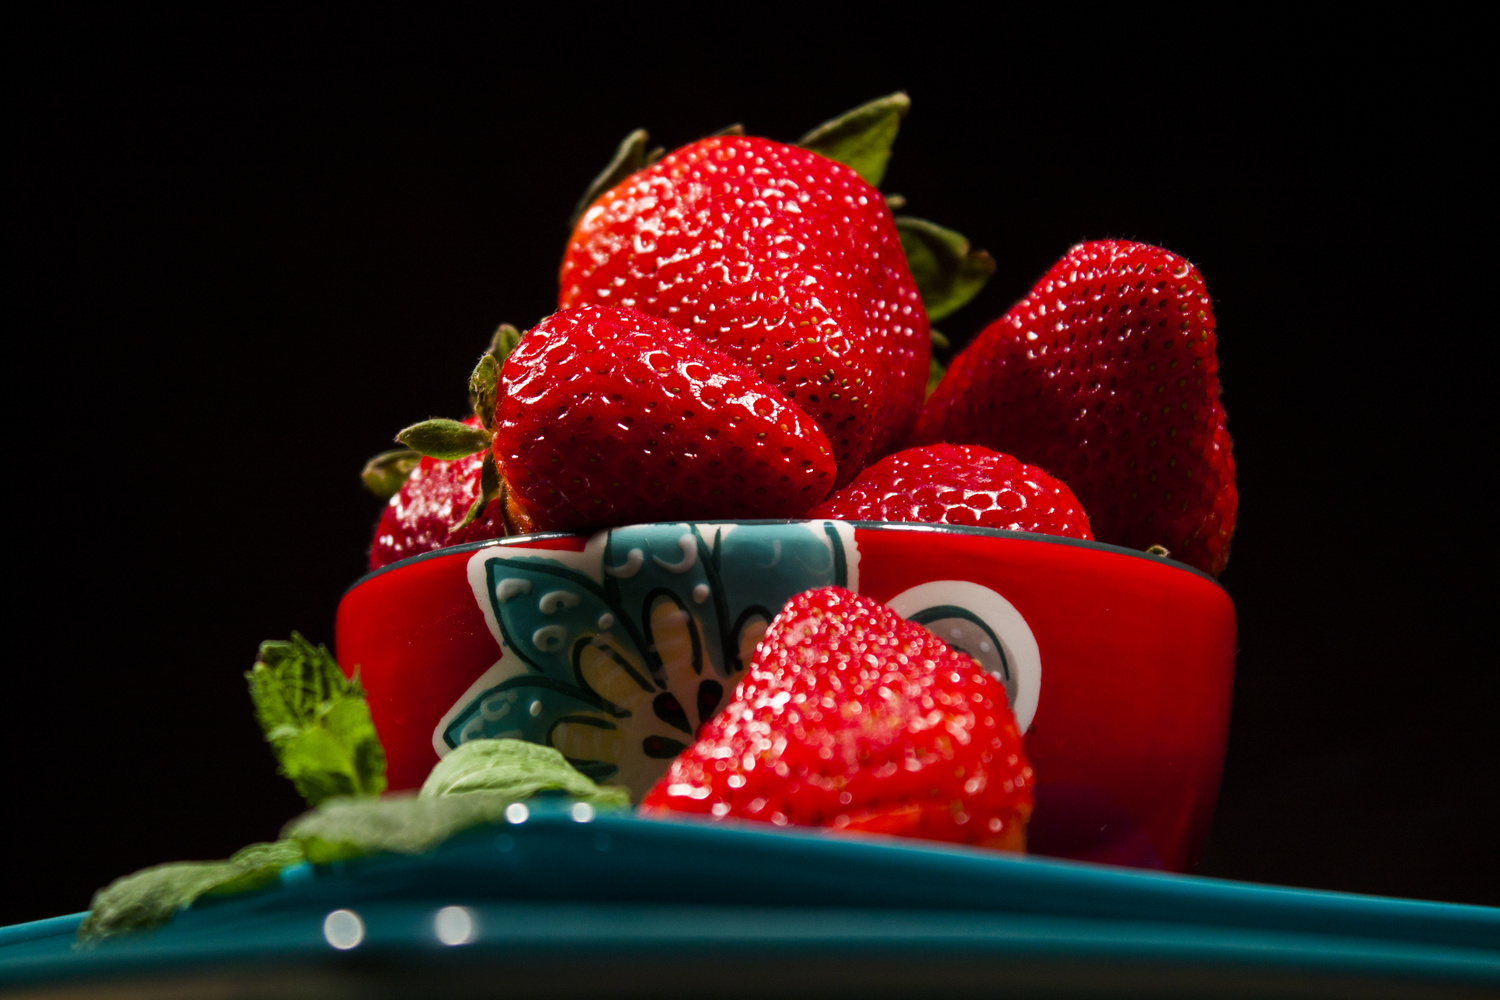 Strawberry perspective by Isaac Holyk